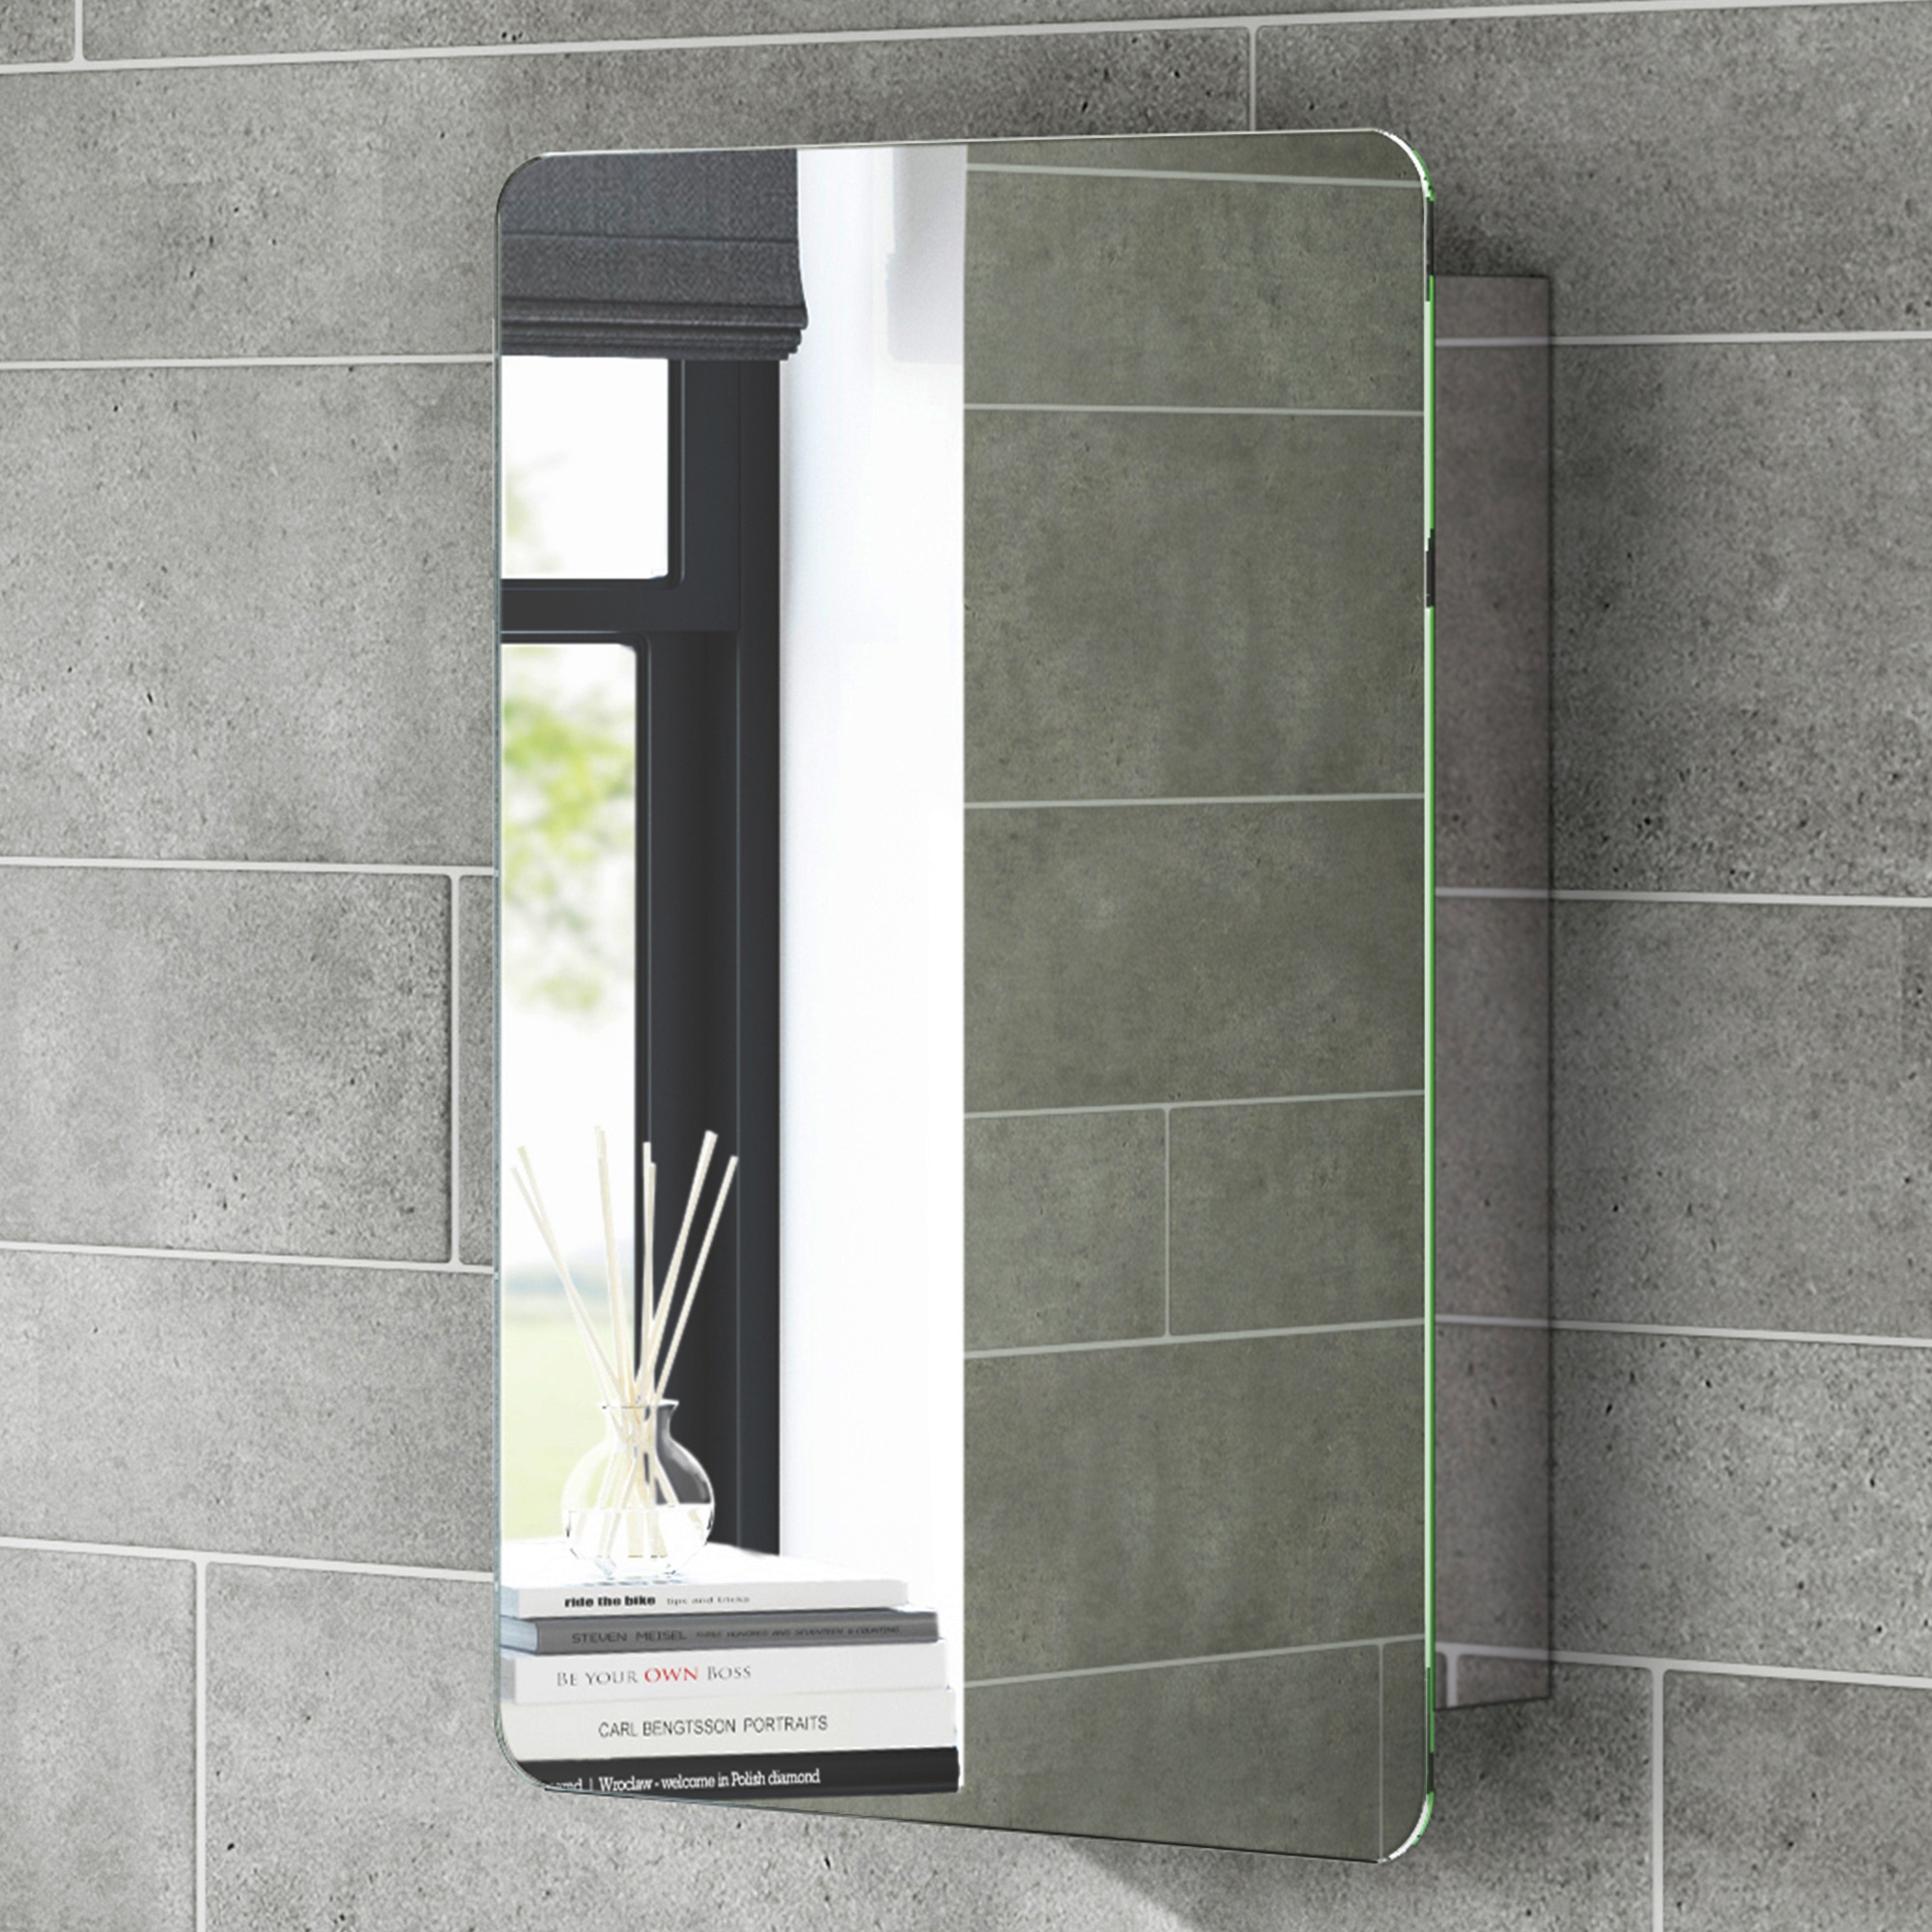 Permalink to Bathroom Sliding Door Cabinet